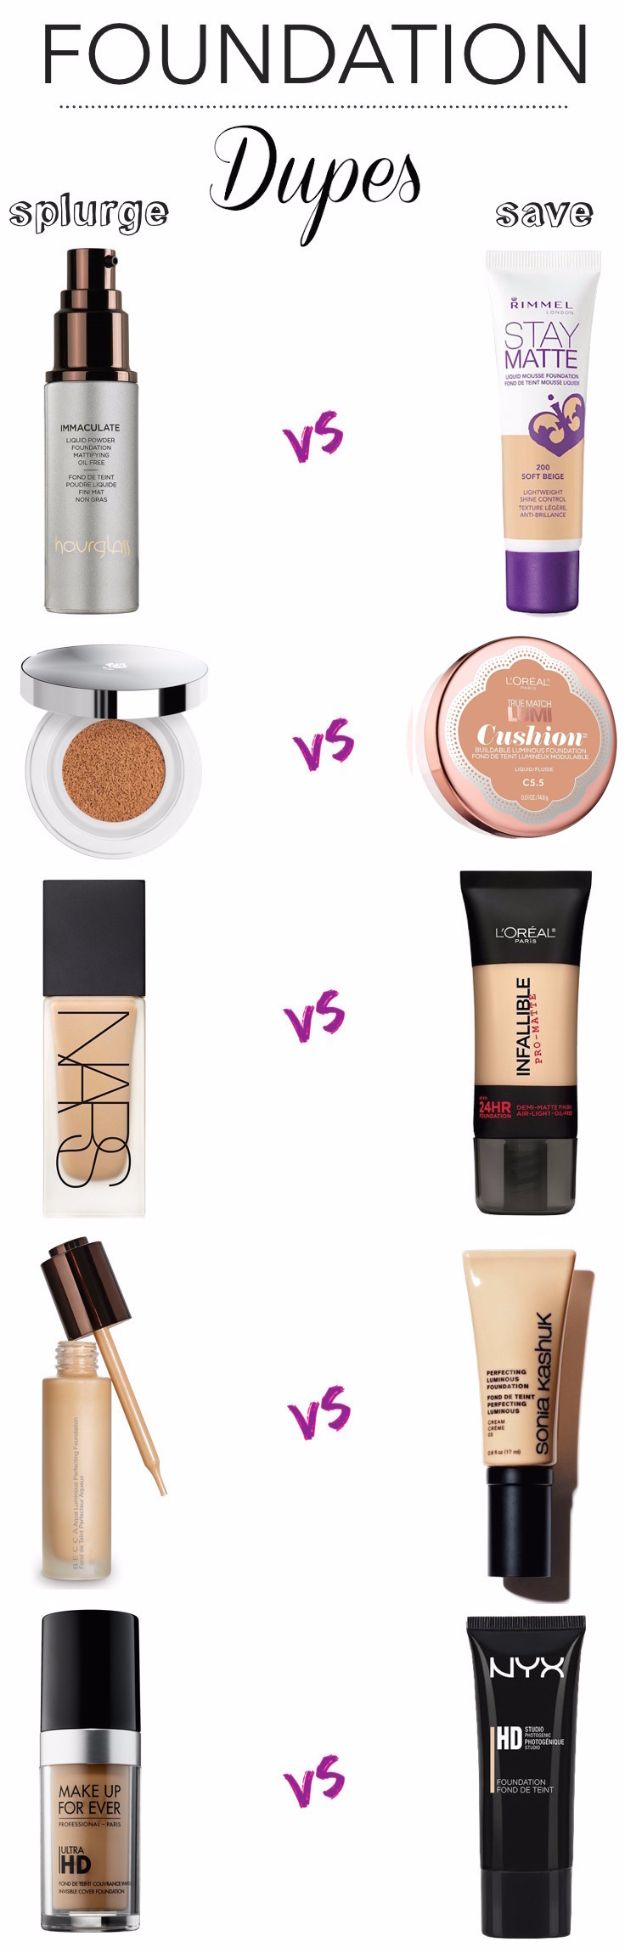 Best Drugstore Makeup Dupes- Splurge vs. Save 10 Fabulous Foundation Dupes - Simple DIY Tutorials That Cover The Best Drugstore Dupes And Products For Foundation, Contouring, Lipsticks, Eye Concealer, Products For Oily Skin, Dupe Brushes, and Primers From 2016 And Places Like Target. These Are Cheap And Affordable - https://thegoddess.com/best-drugstore-makeup-dupes